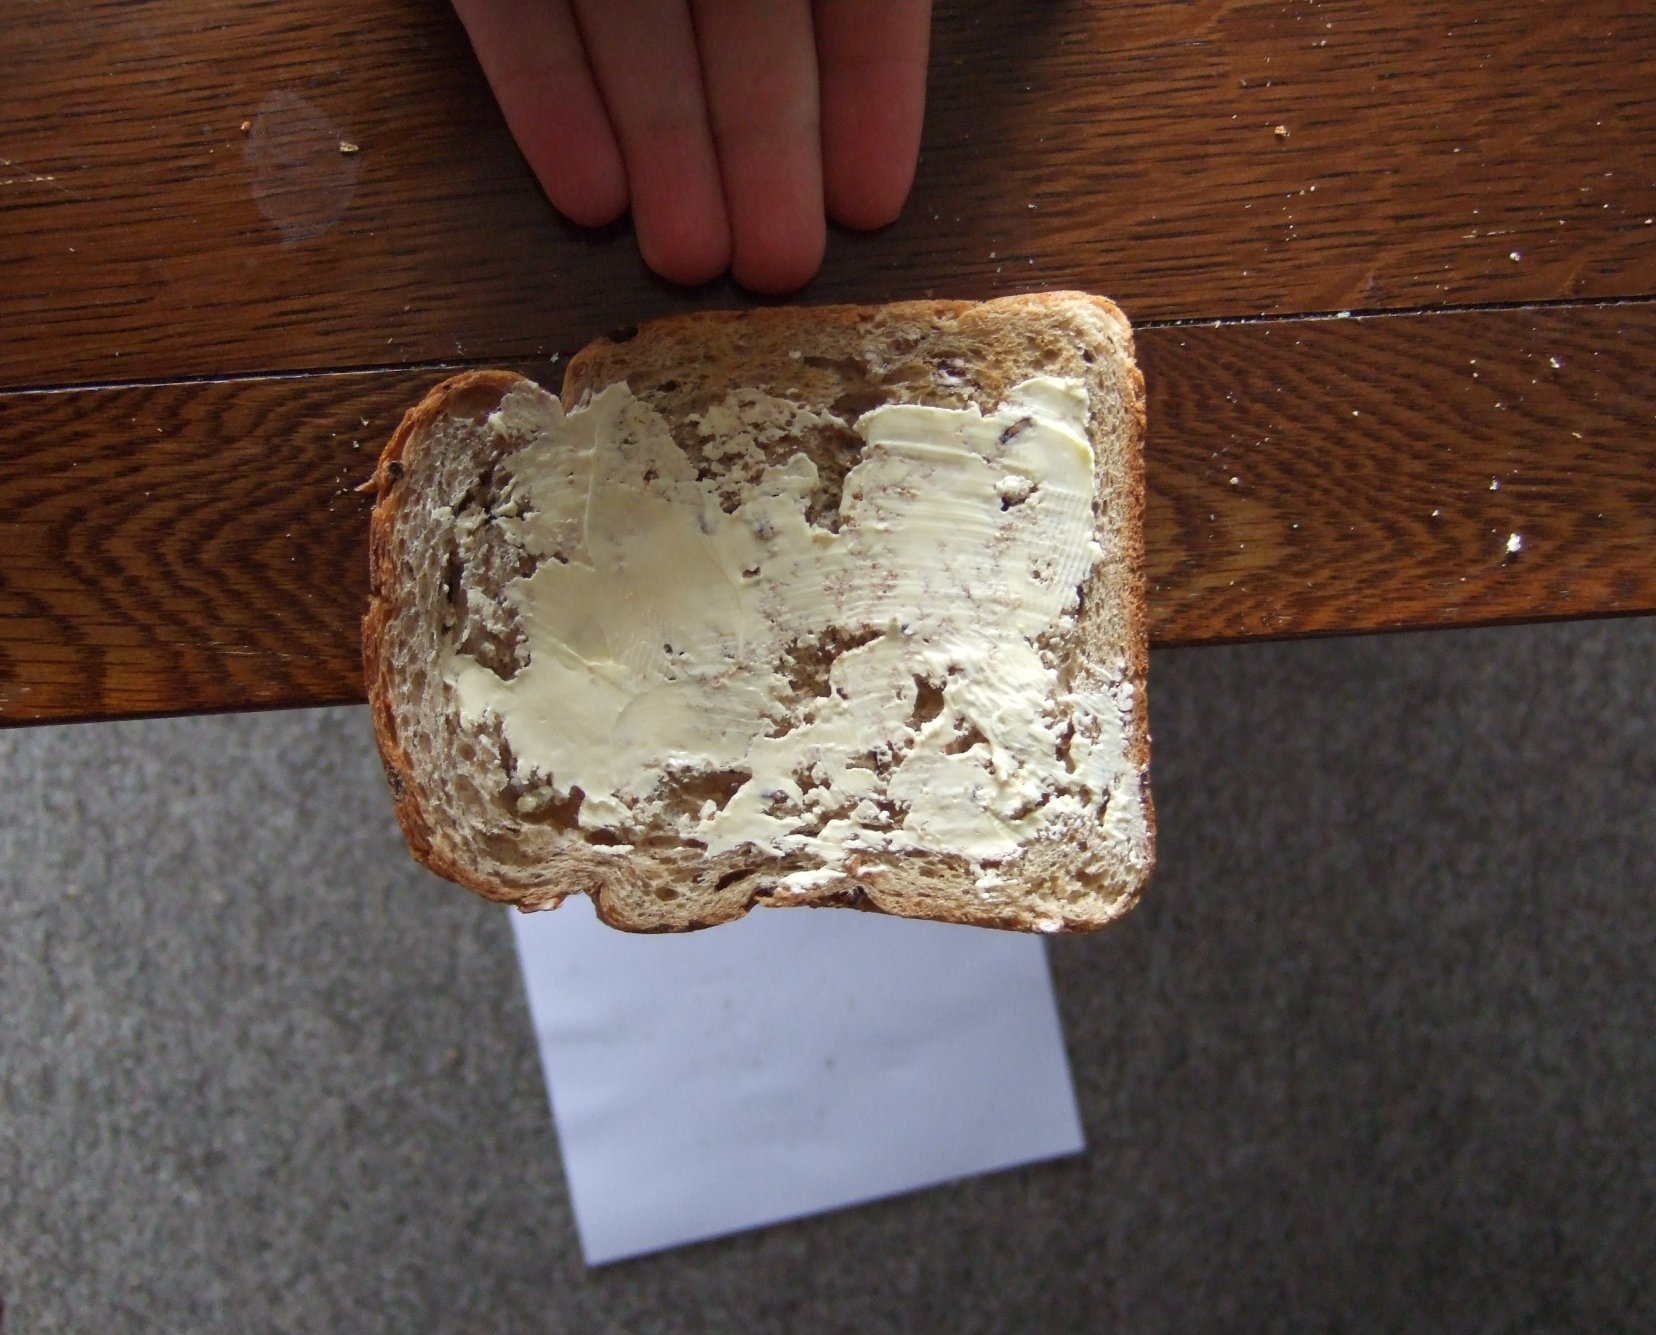 Pushing toast of table